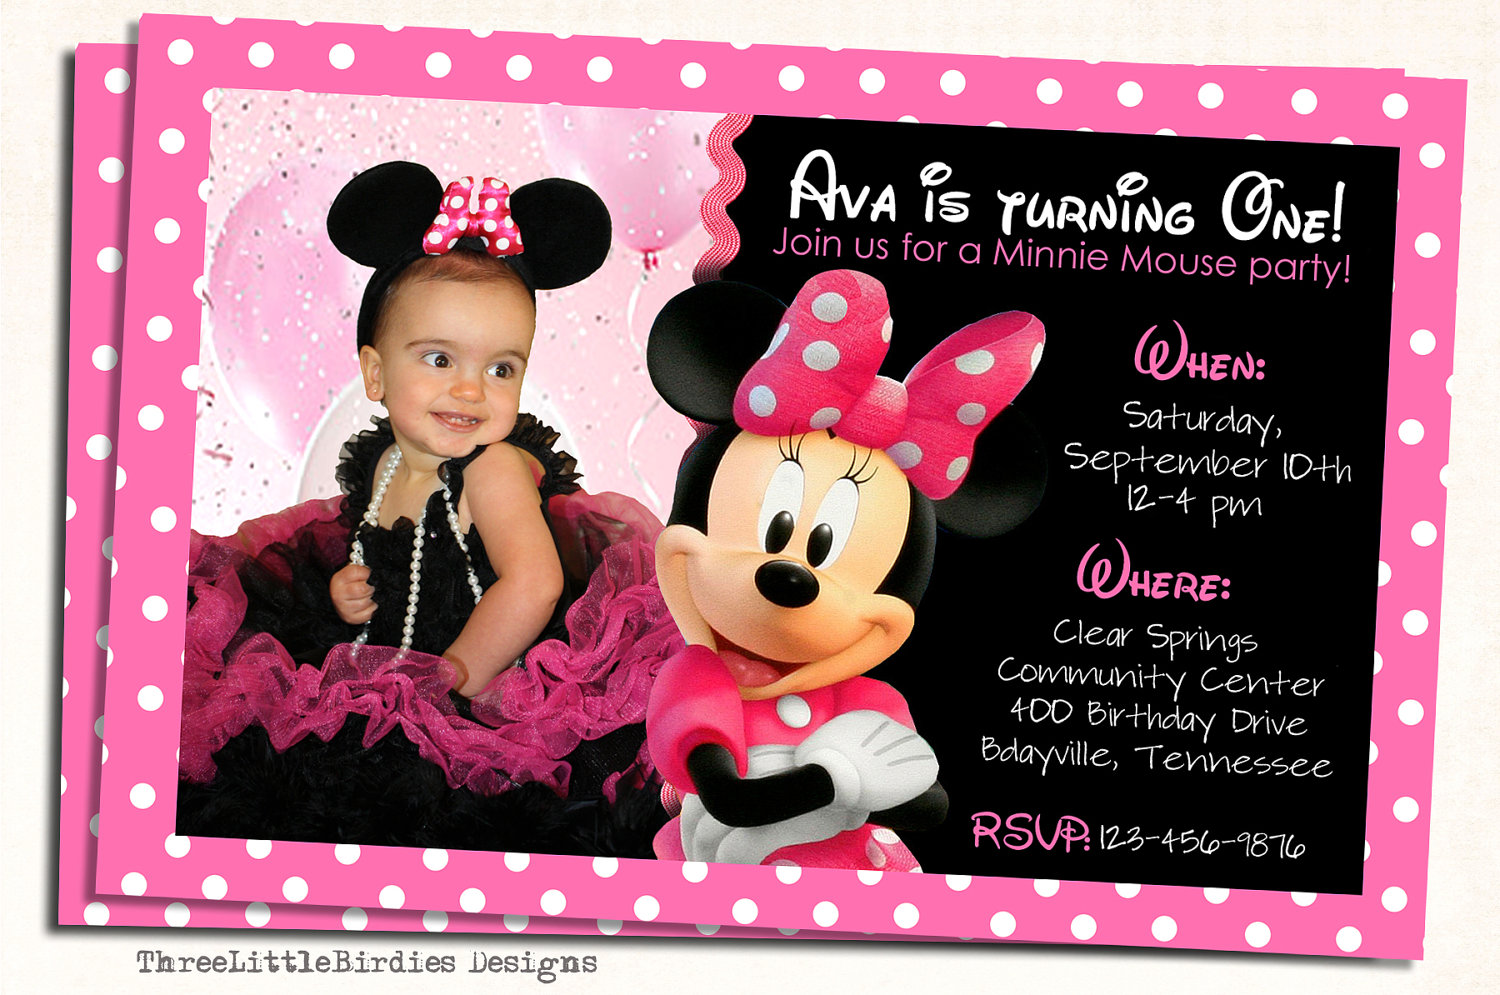 minnie mouse birthday invitations personalized photo ; minnie-mouse-birthday-invitations-personalized-as-your-ideas-amplifyer-for-your-interesting-Birthday-invitation-5